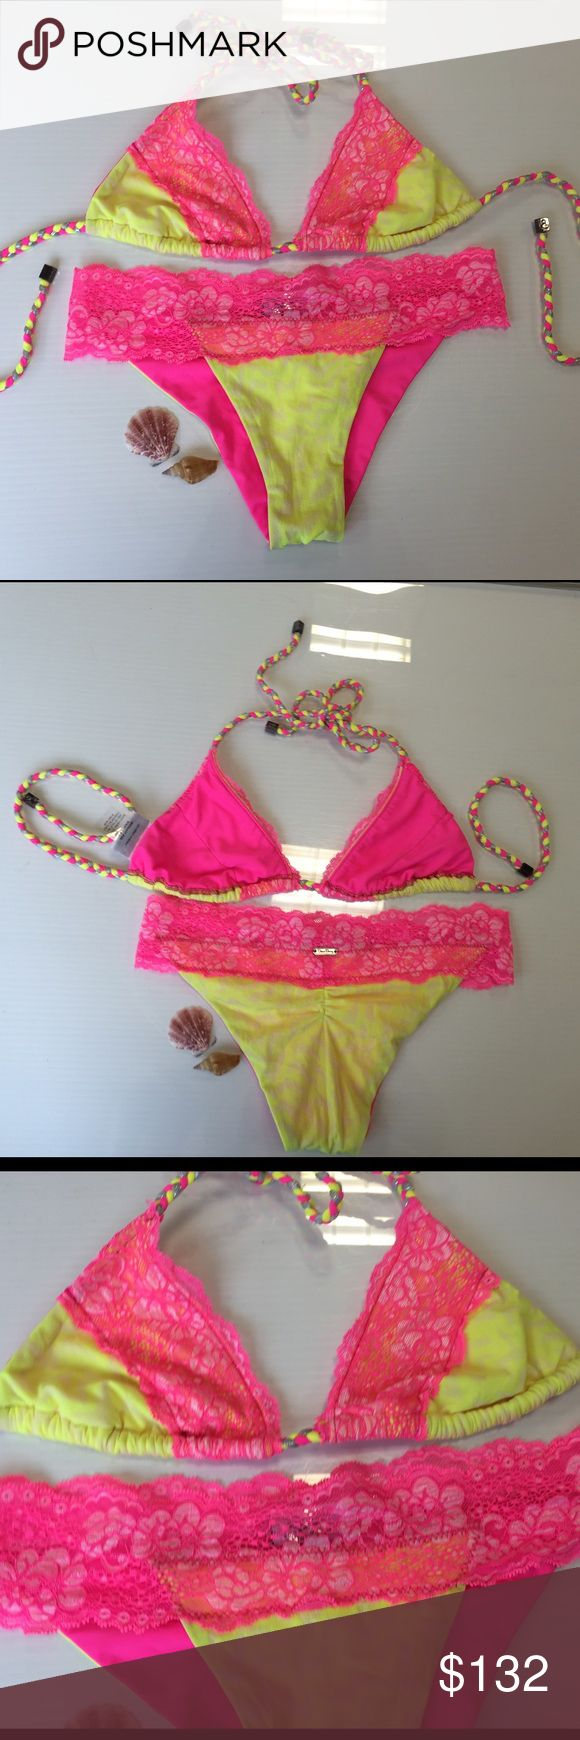 Beach bunny hot pink neon lace bikini size medium Beach bunny hot pink neon lace bikini size medium pre-loved and only used once for a few hours like new Beach Bunny Swim Bikinis